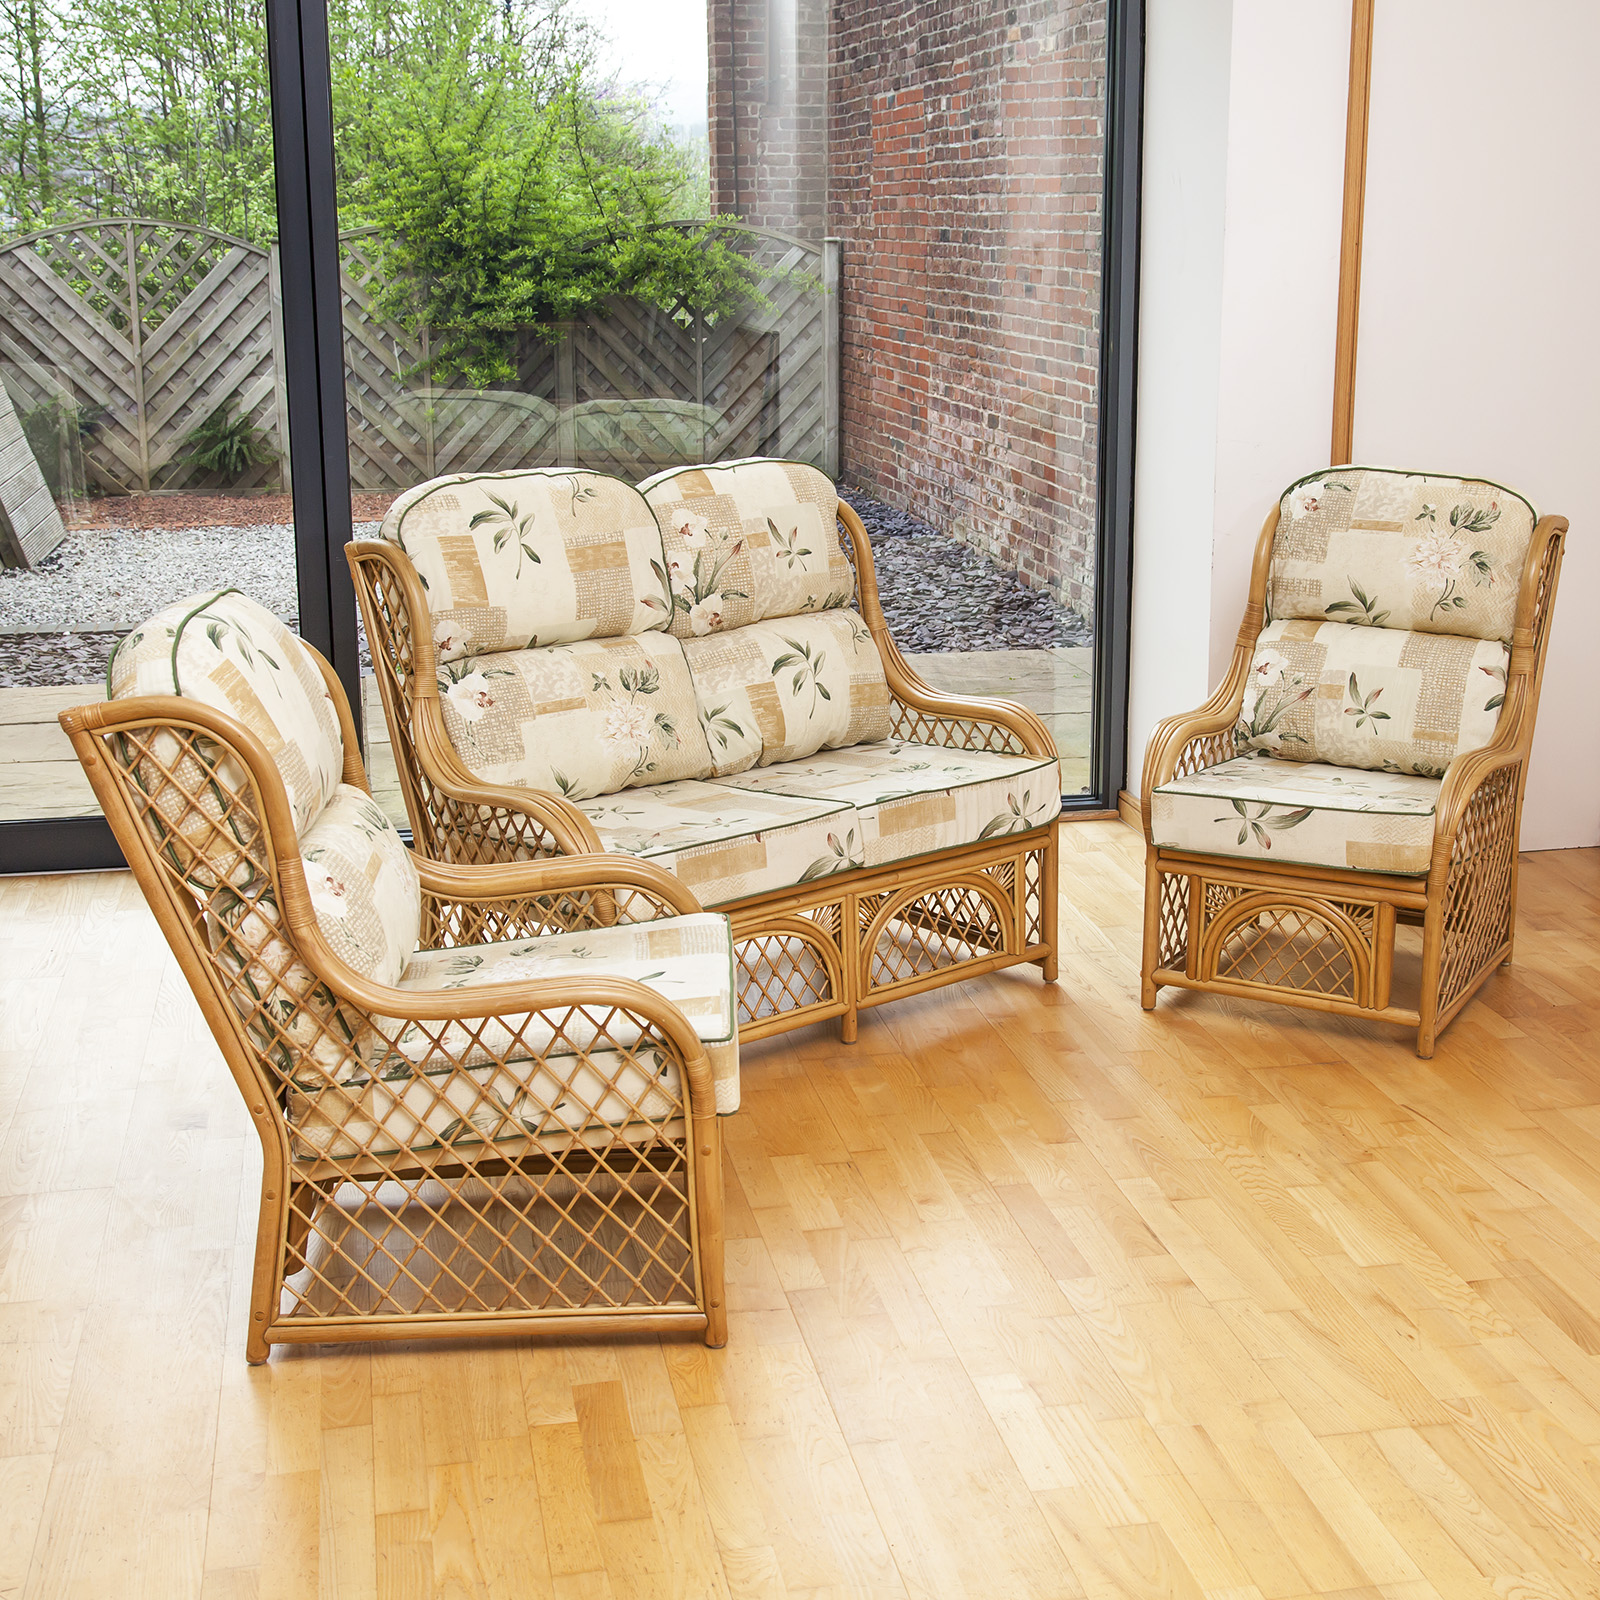 Cane And Rattan Conservatory Furniture Home Furniture DIY Furniture Sofas Armchairs Suites